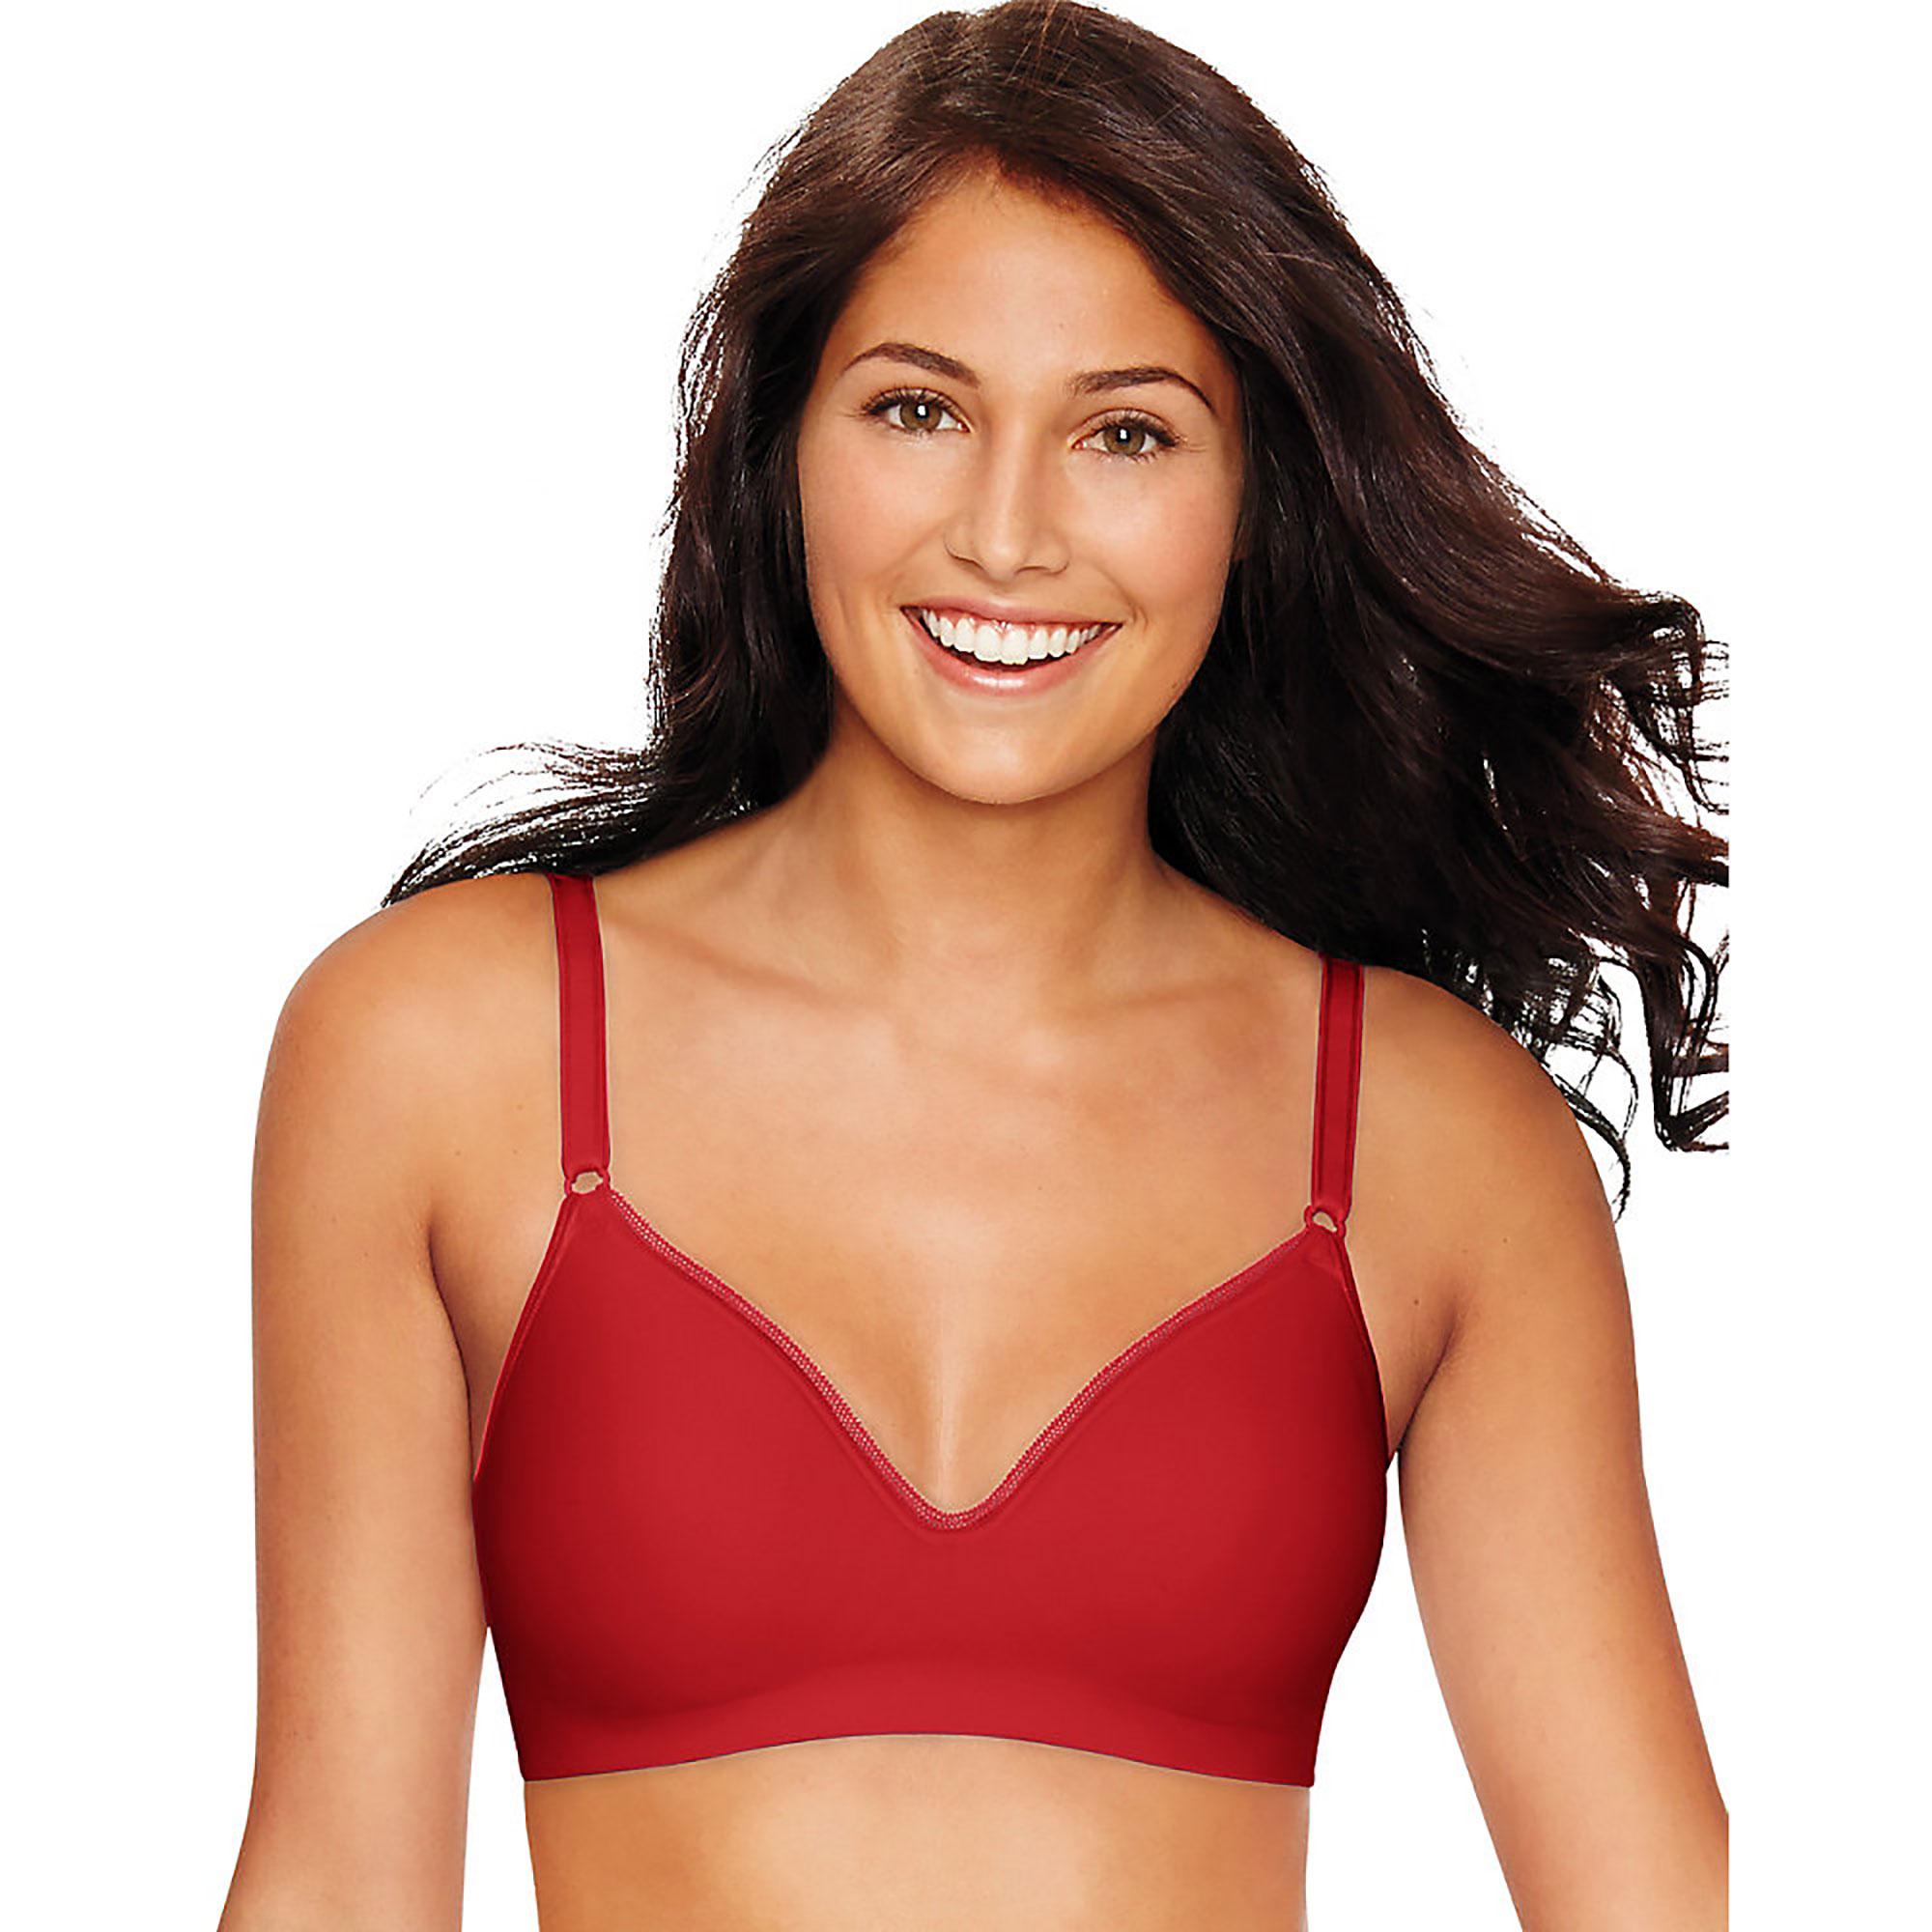 Hanes Womens Smooth Inside and Out Foam Wirefree Bra, Style HU05